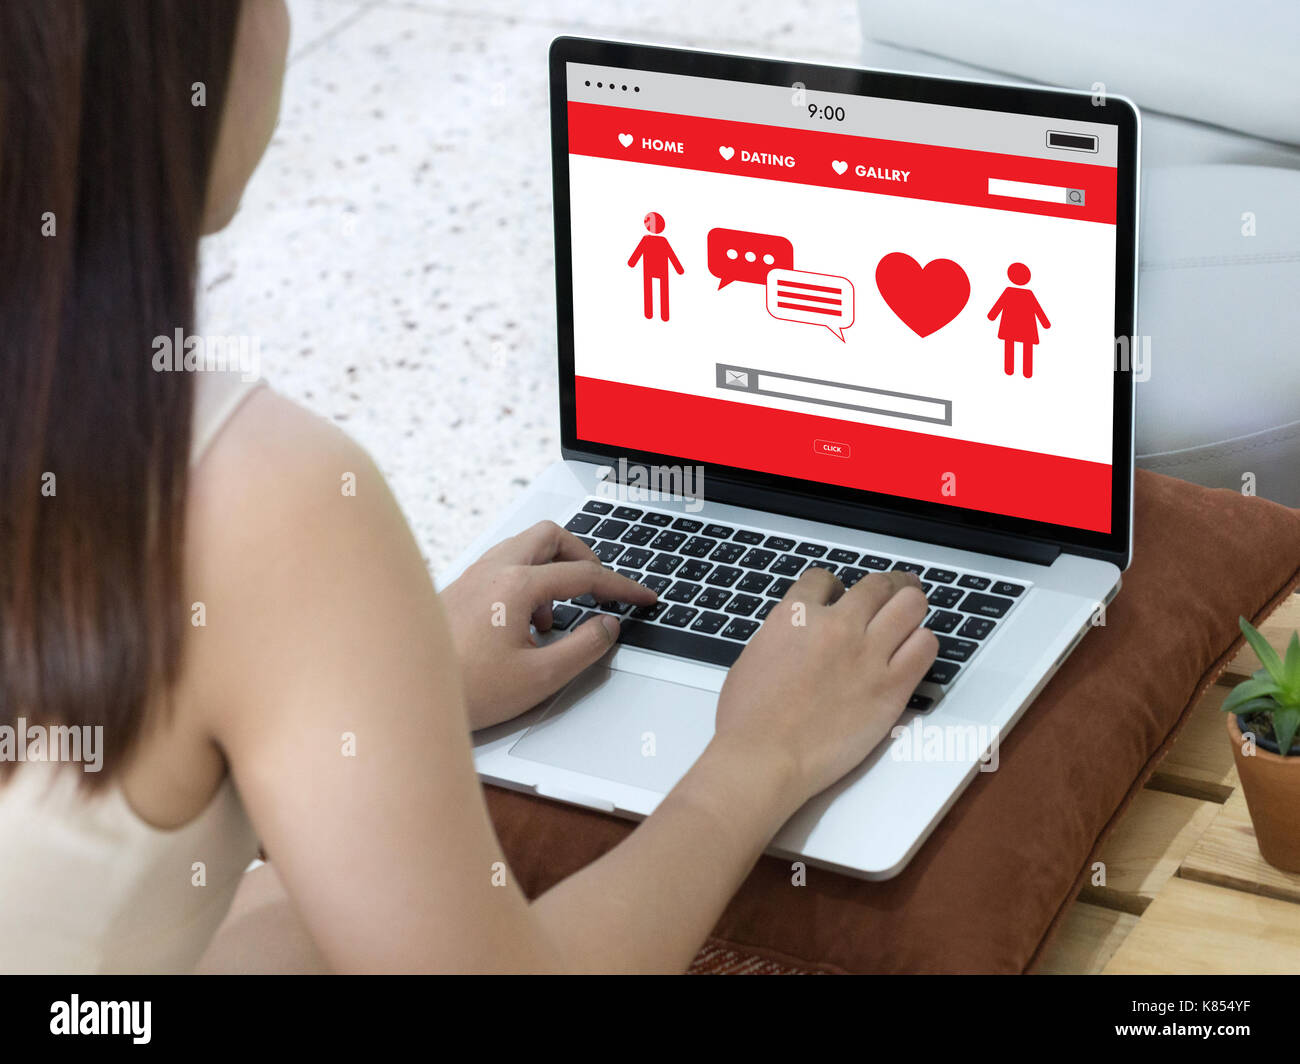 Heart dating online